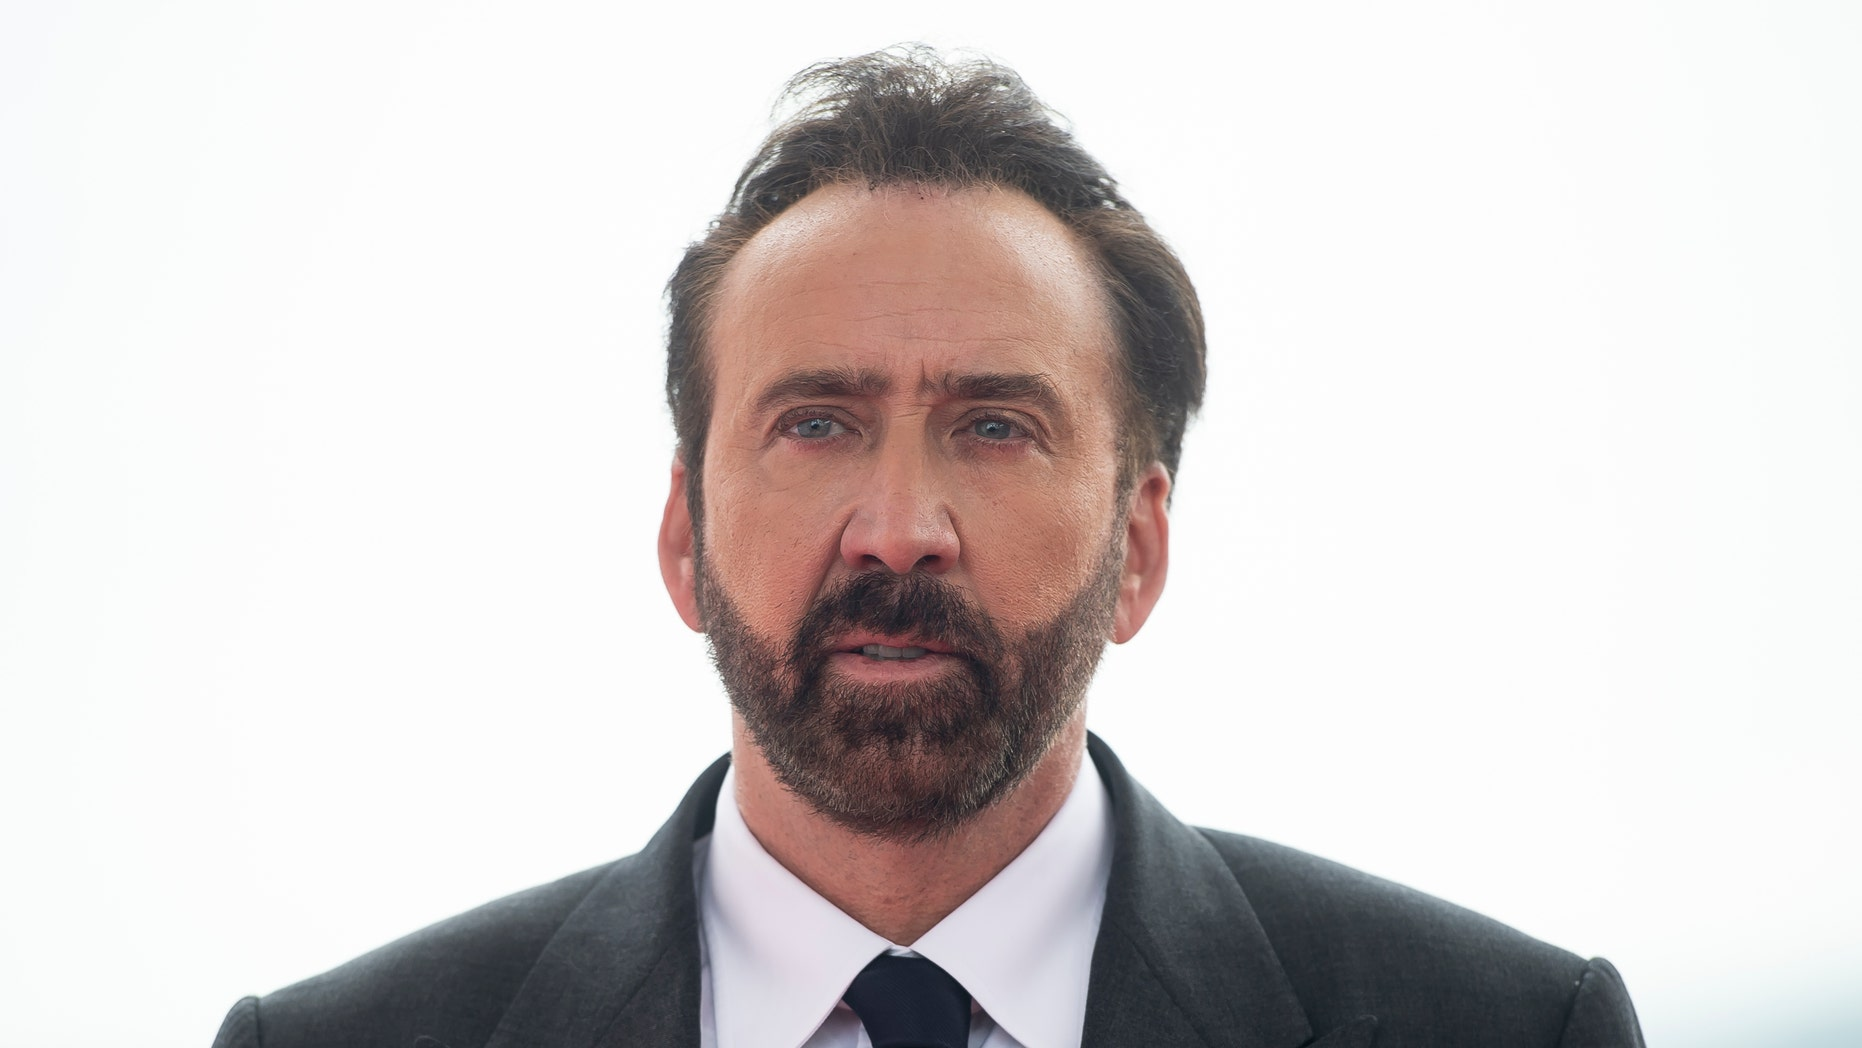 Nicolas Cage files for annulment four days after apparent wedding